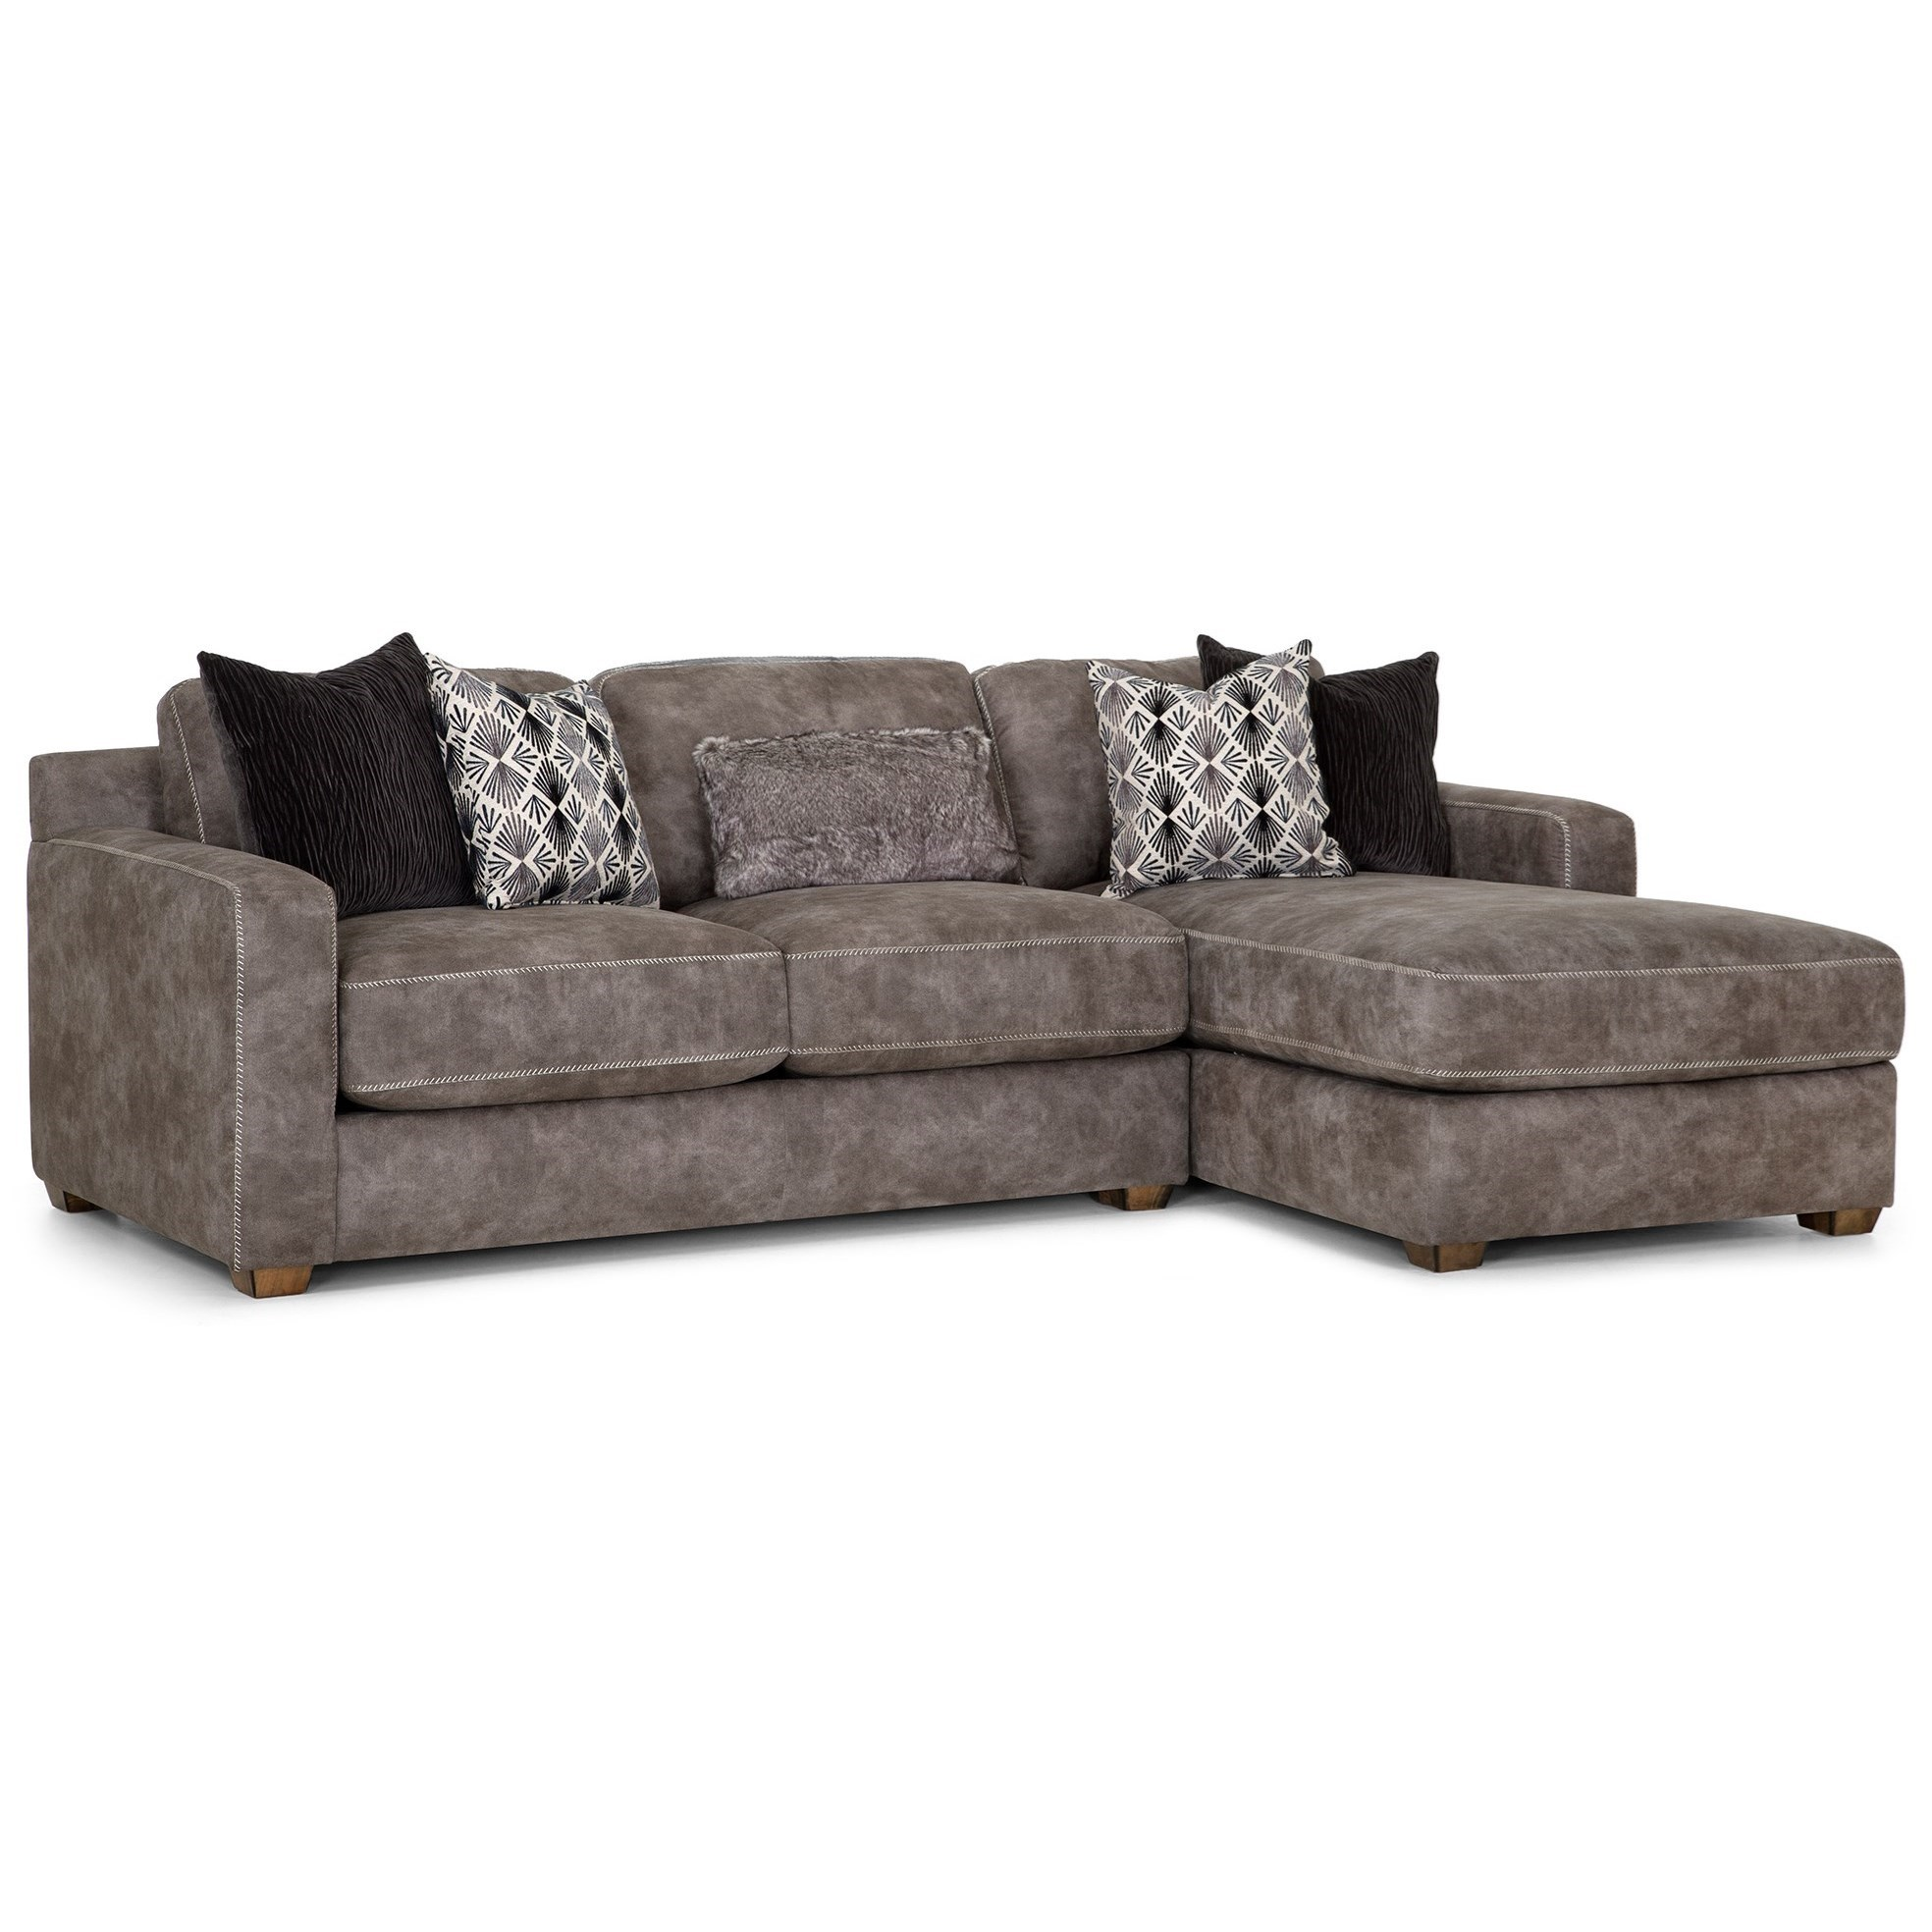 Contemporary Couch Franklin Jameson Contemporary Sofa With Chaise Howell Furniture